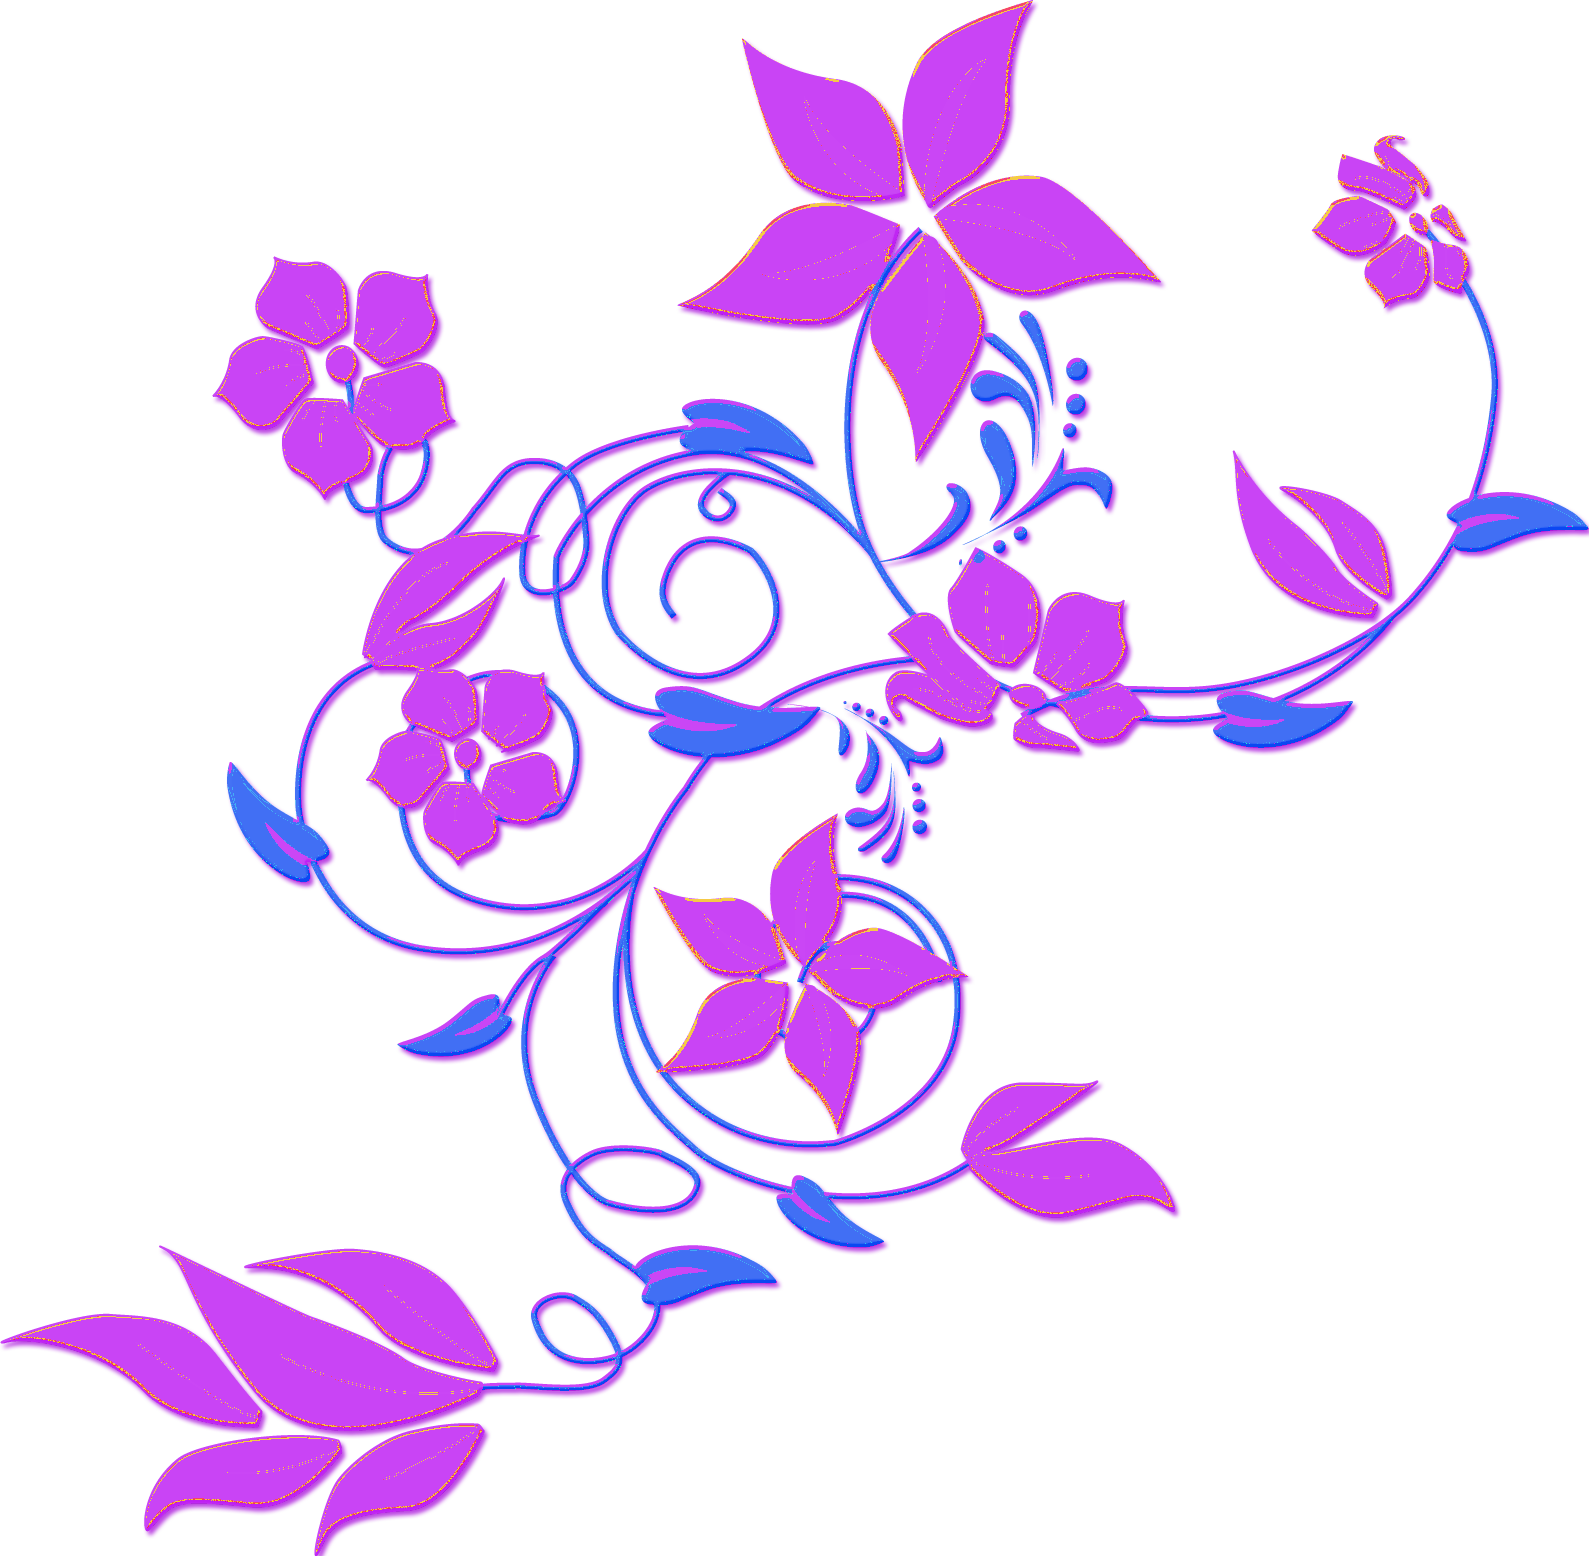 Vector flower png. Free images at clker